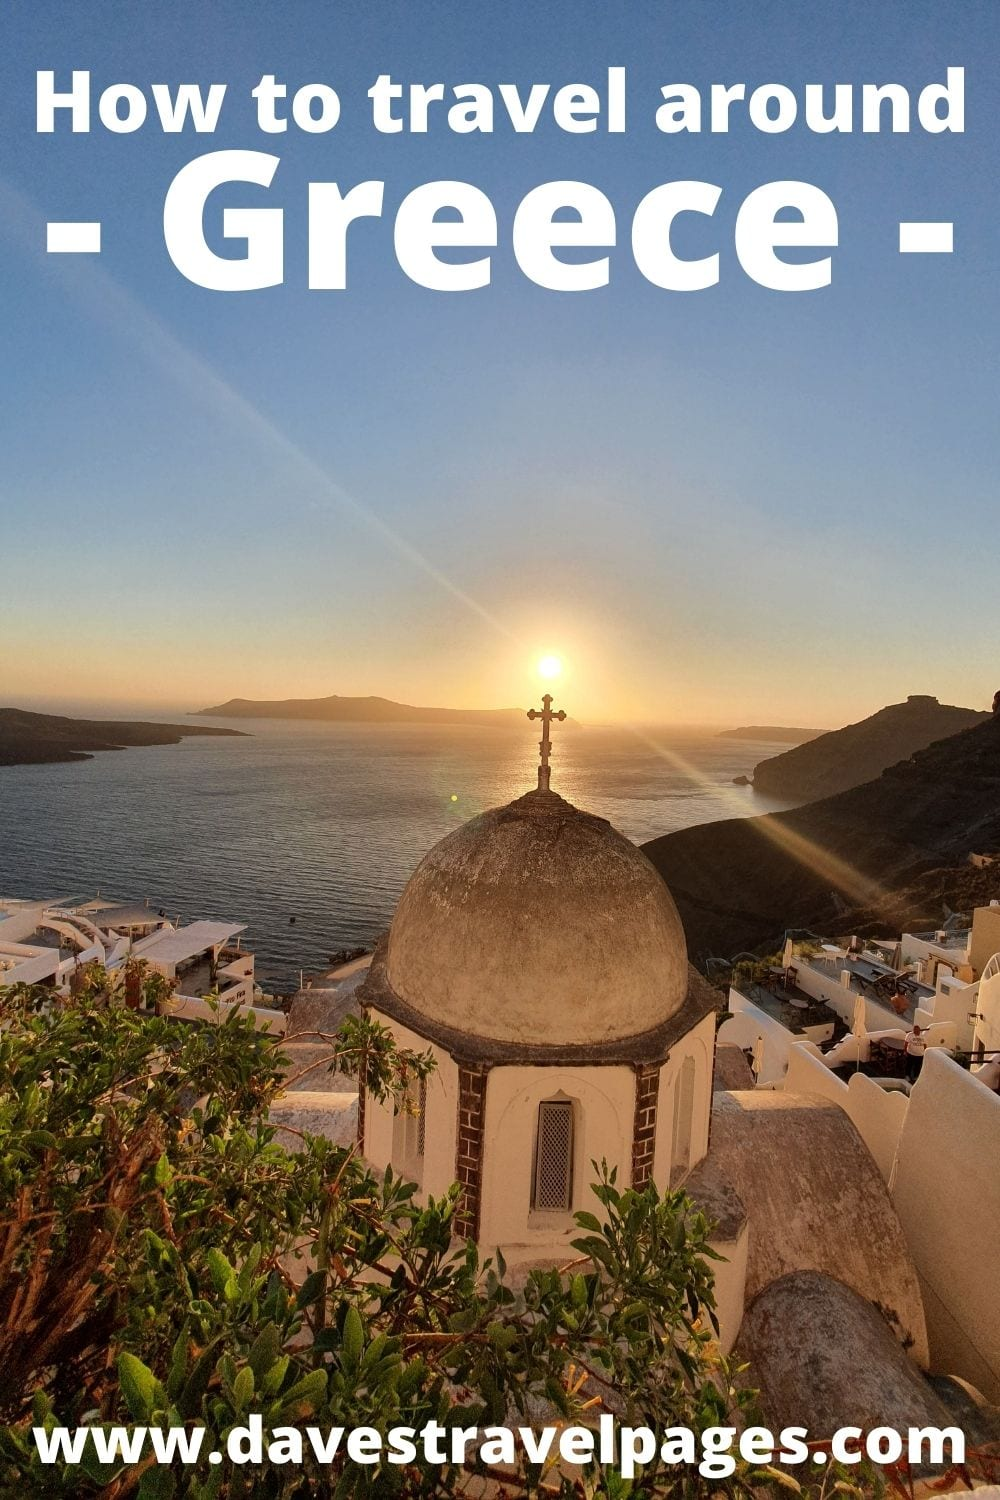 How to travel around Greece